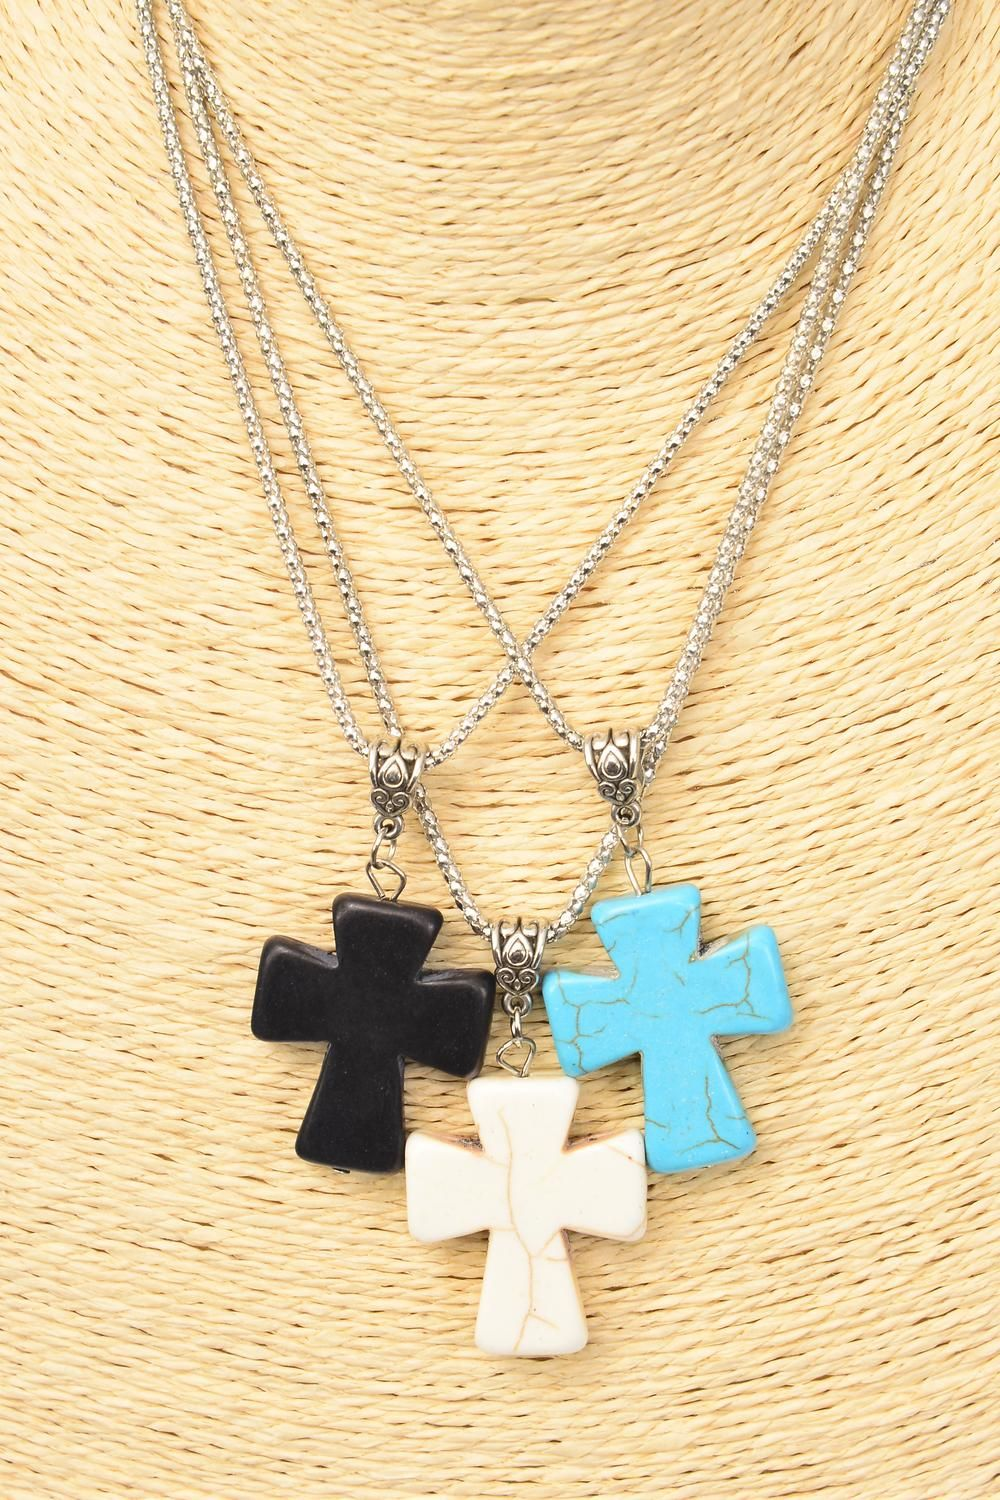 "Necklace Silver Chain Metal Antique Cross Semiprecious Stone/DZ match 03129 Pendant-1.5"" x 1.25."" Wide,Chain-18"" Extension Chain,4 Ivory,4 Black,4 Turquoise Asst,Hang Tag & OPP Bag & UPC Code"